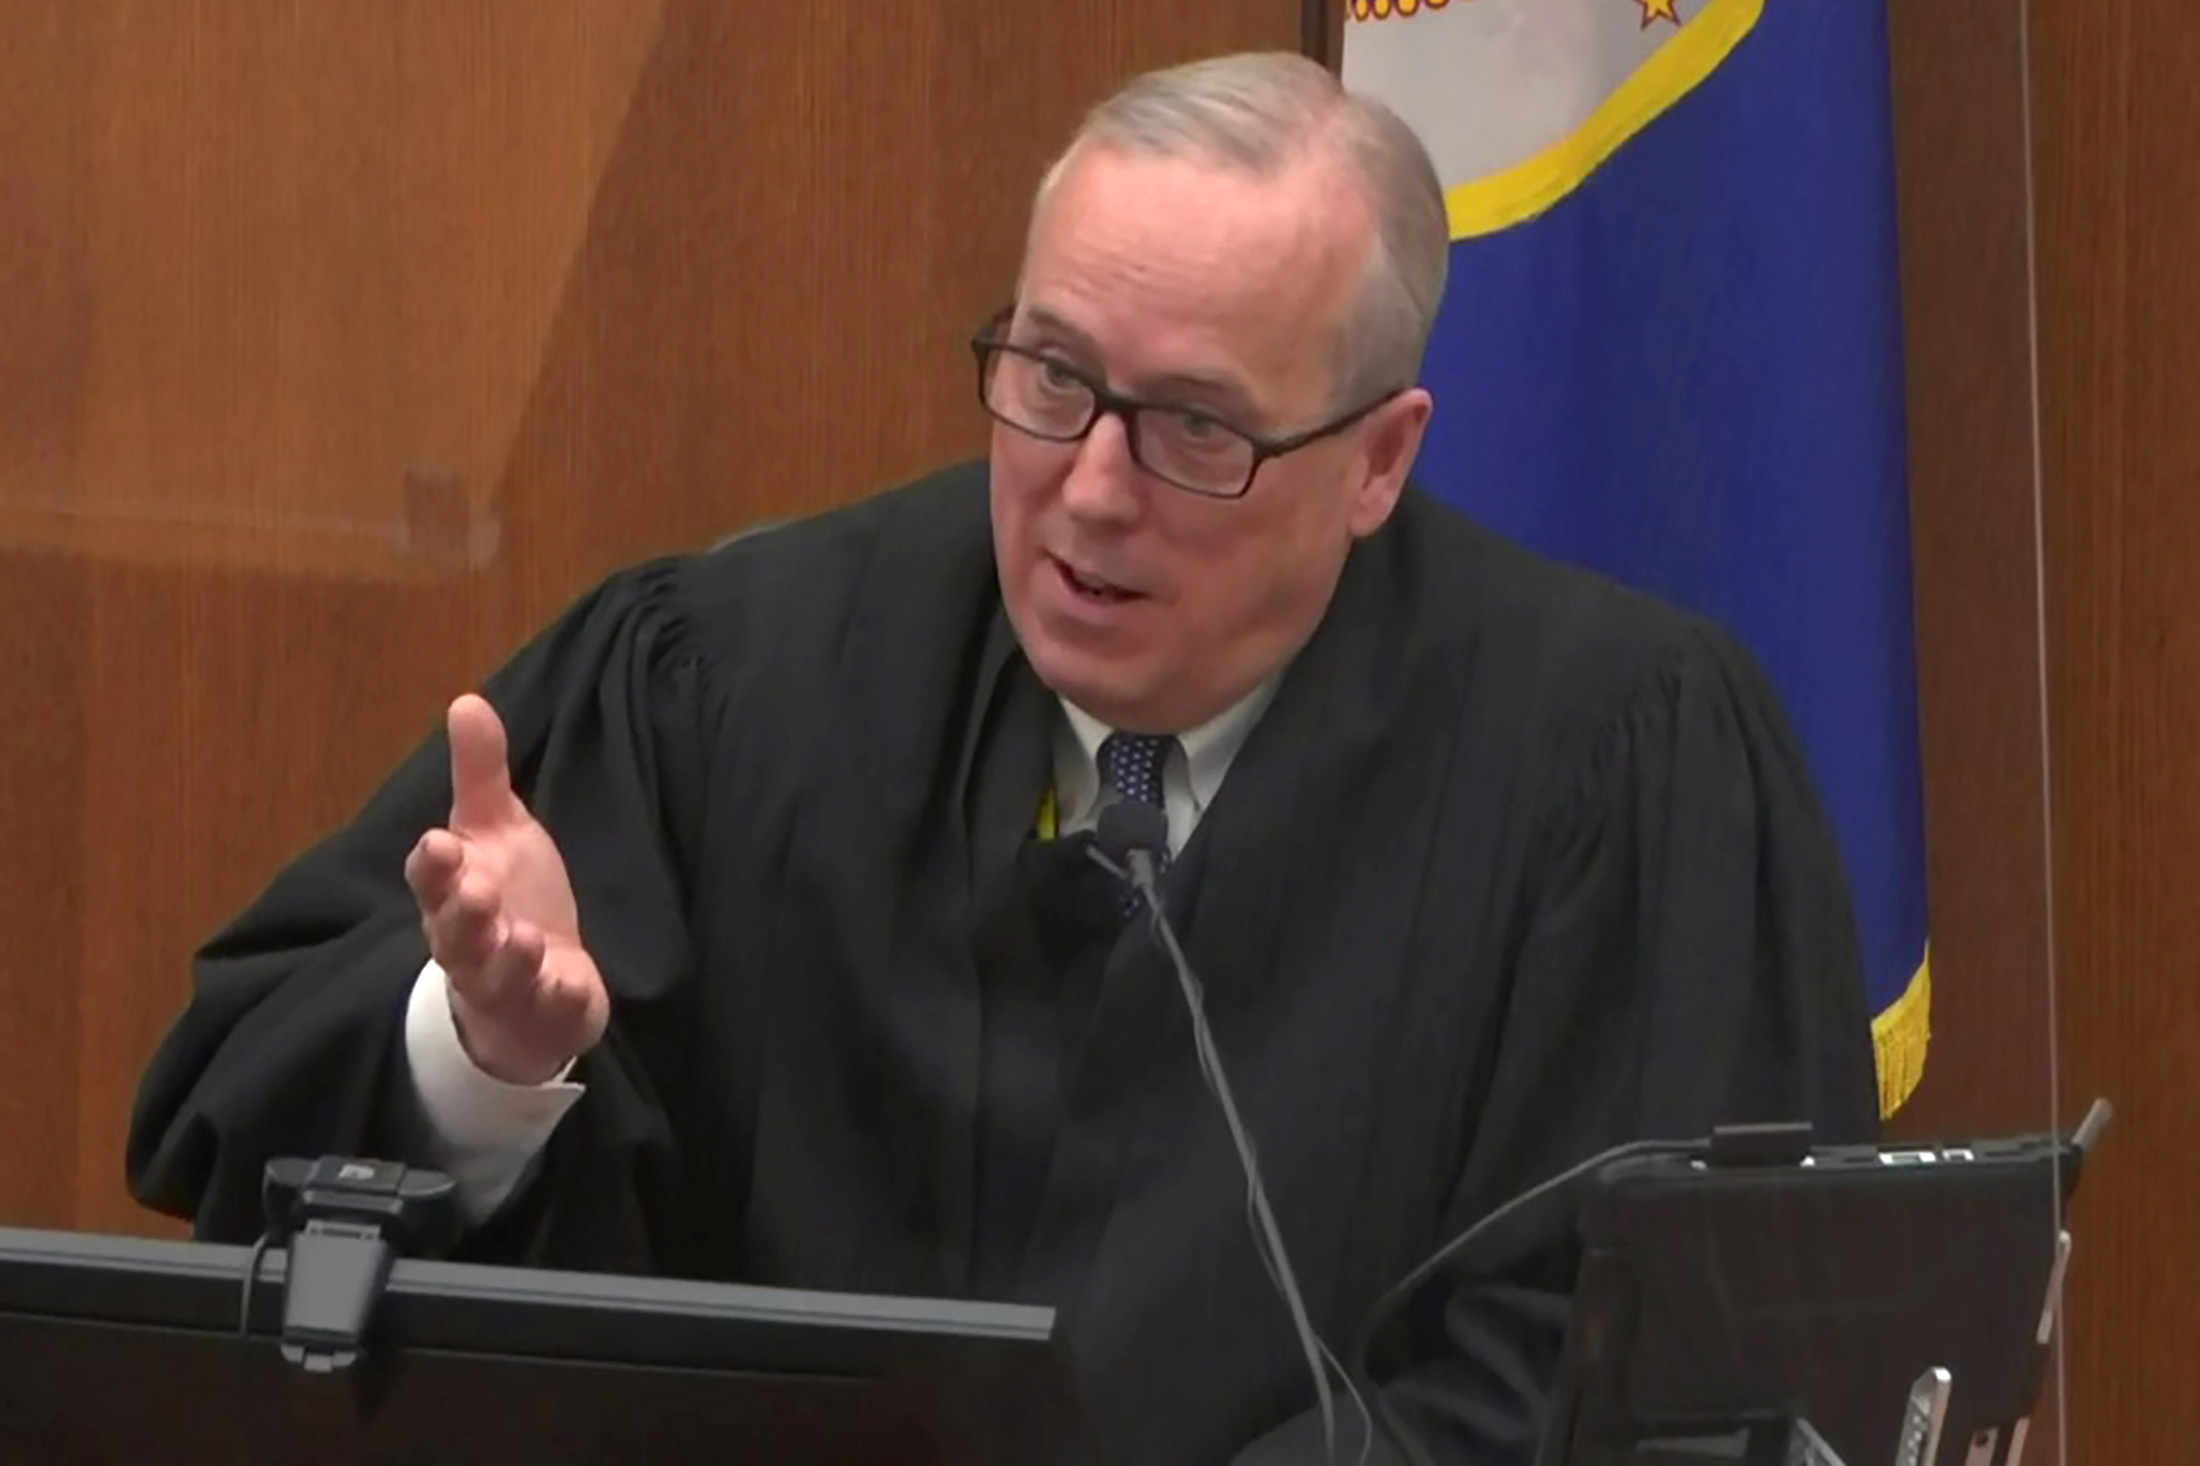 Hennepin County District Judge Peter Cahill speaks with legal teams on the eleventh day of the trial of former Minneapolis police officer Derek Chauvin for second-degree murder, third-degree murder and second-degree manslaughter in the death of George Floyd in Minneapolis, Minnesota, U.S. April 12, 2021 in a still image from video.  Pool via REUTERS